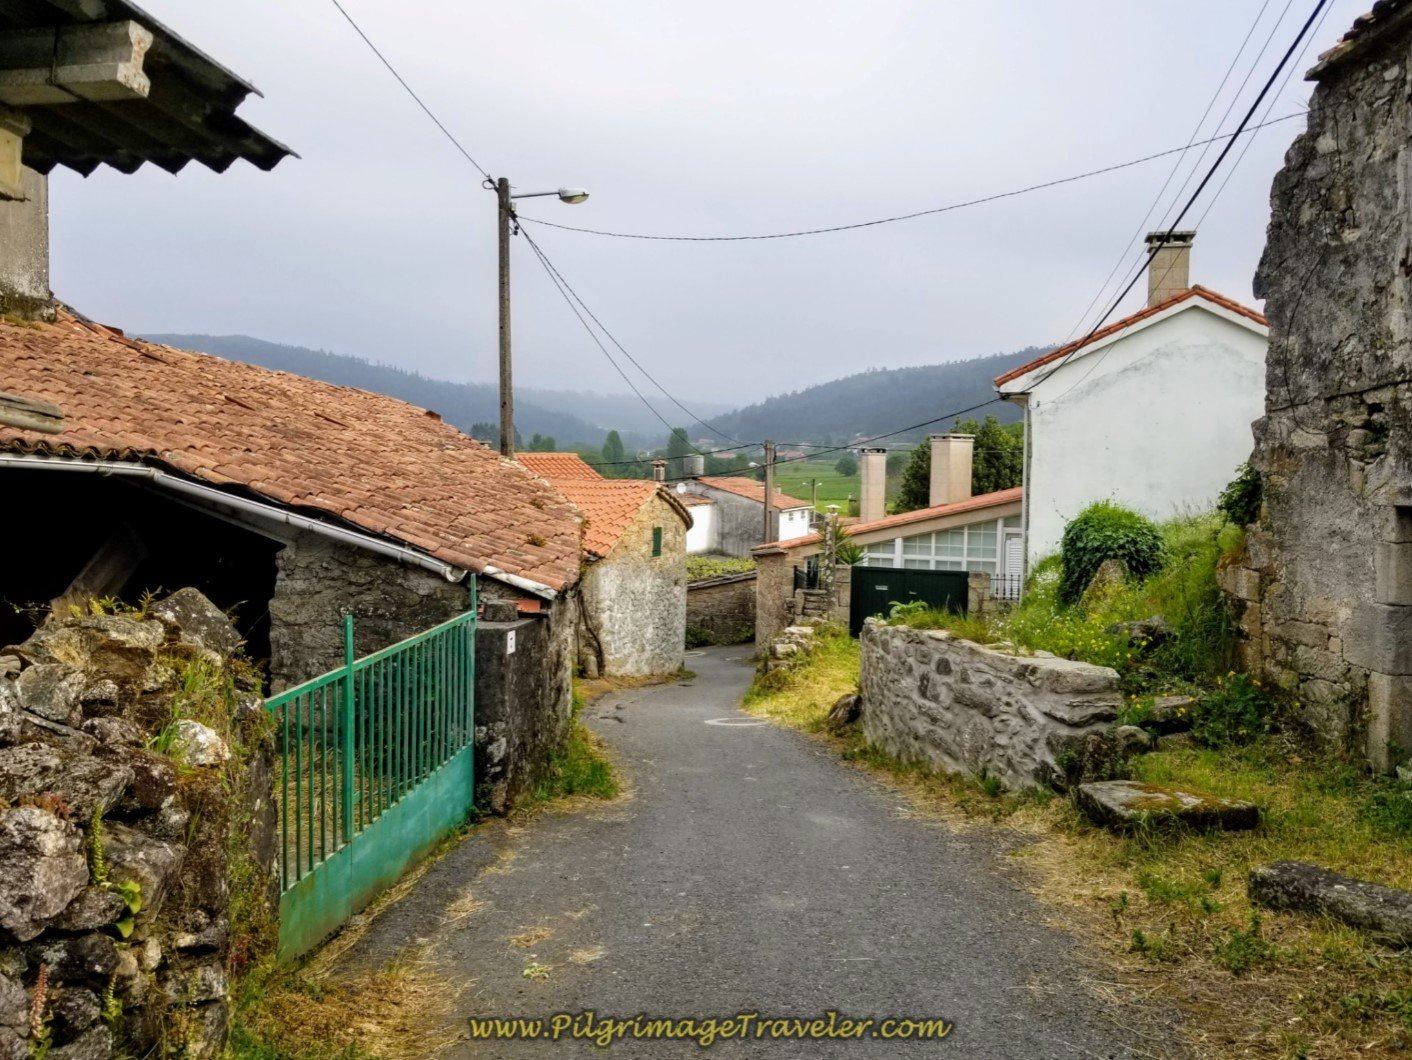 Walking Through the Village of Roxos on day one of the Camino Finisterre